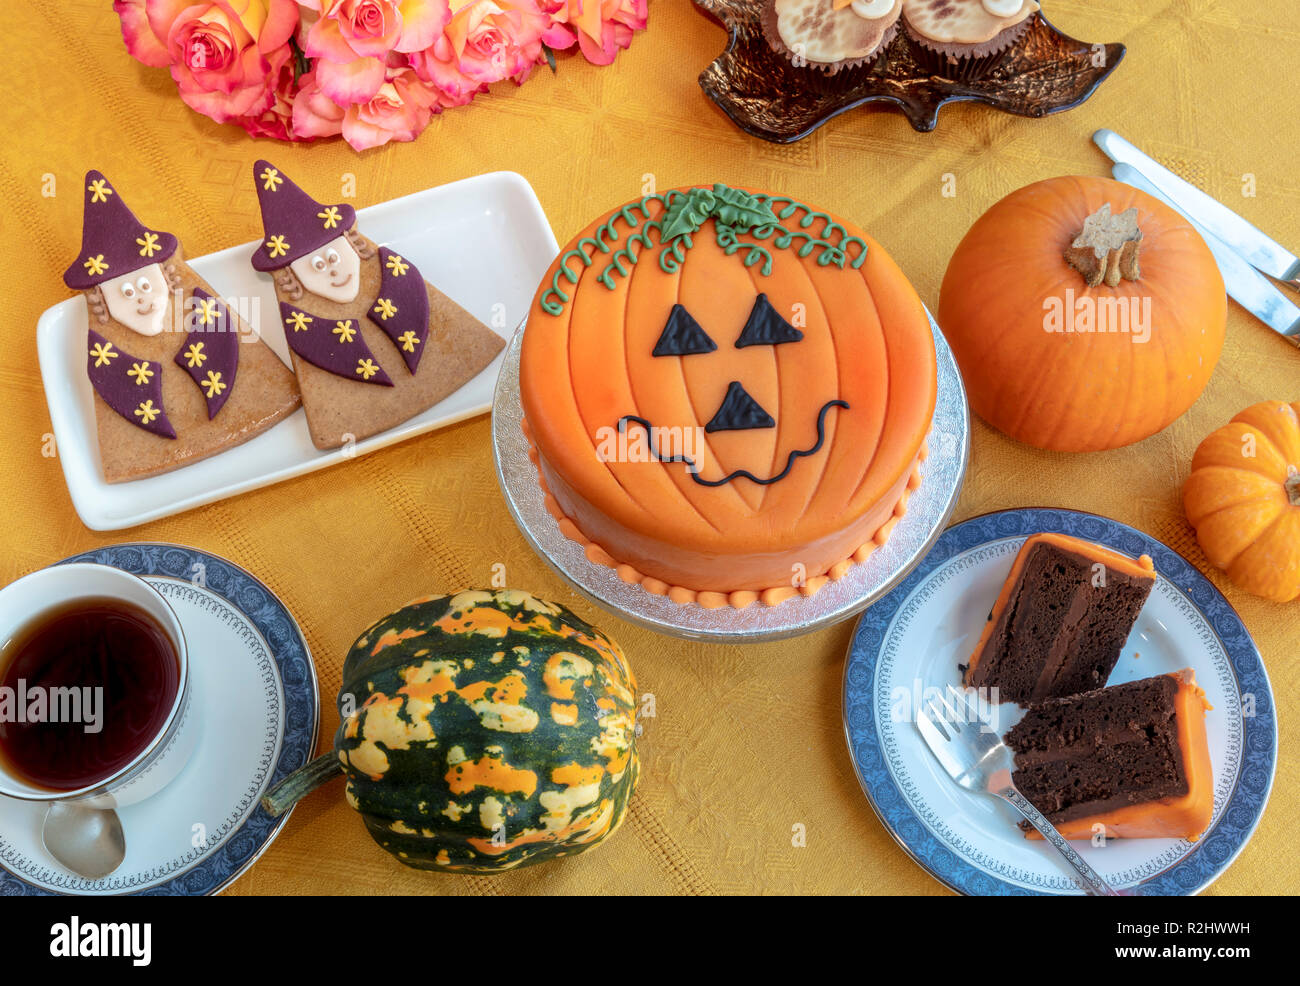 Novelty cake decorated with marzipan and icing in Halloween pumpkin theme. - Stock Image